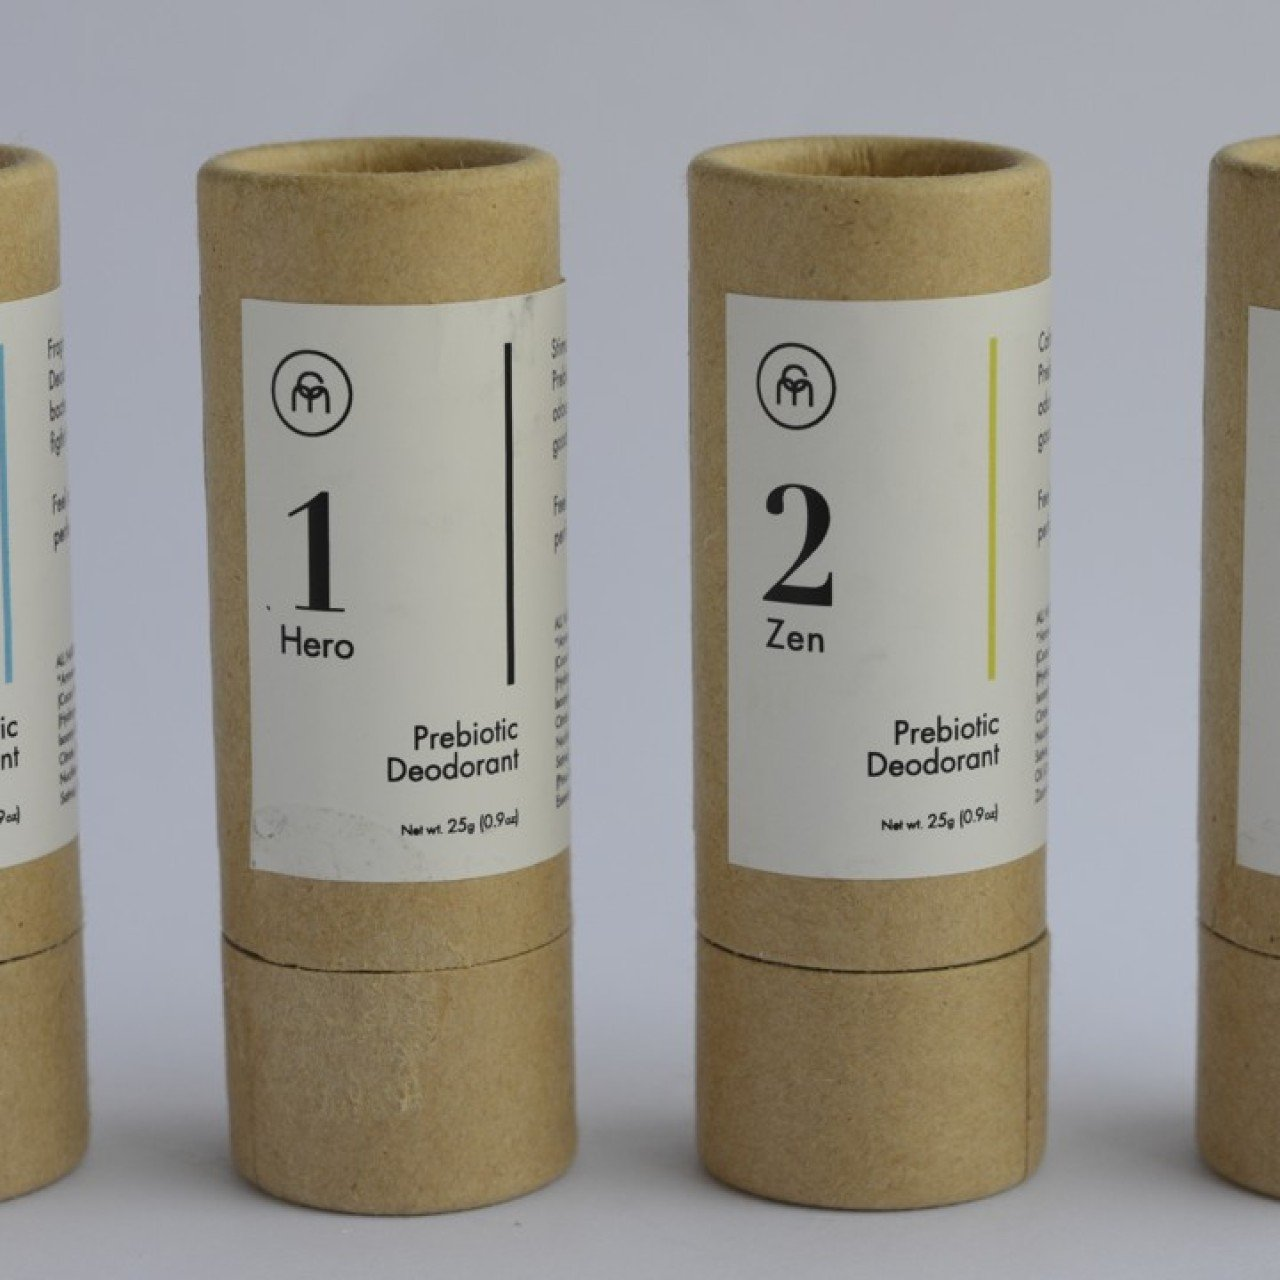 Plastic-free, natural deodorants: we test six of the best available